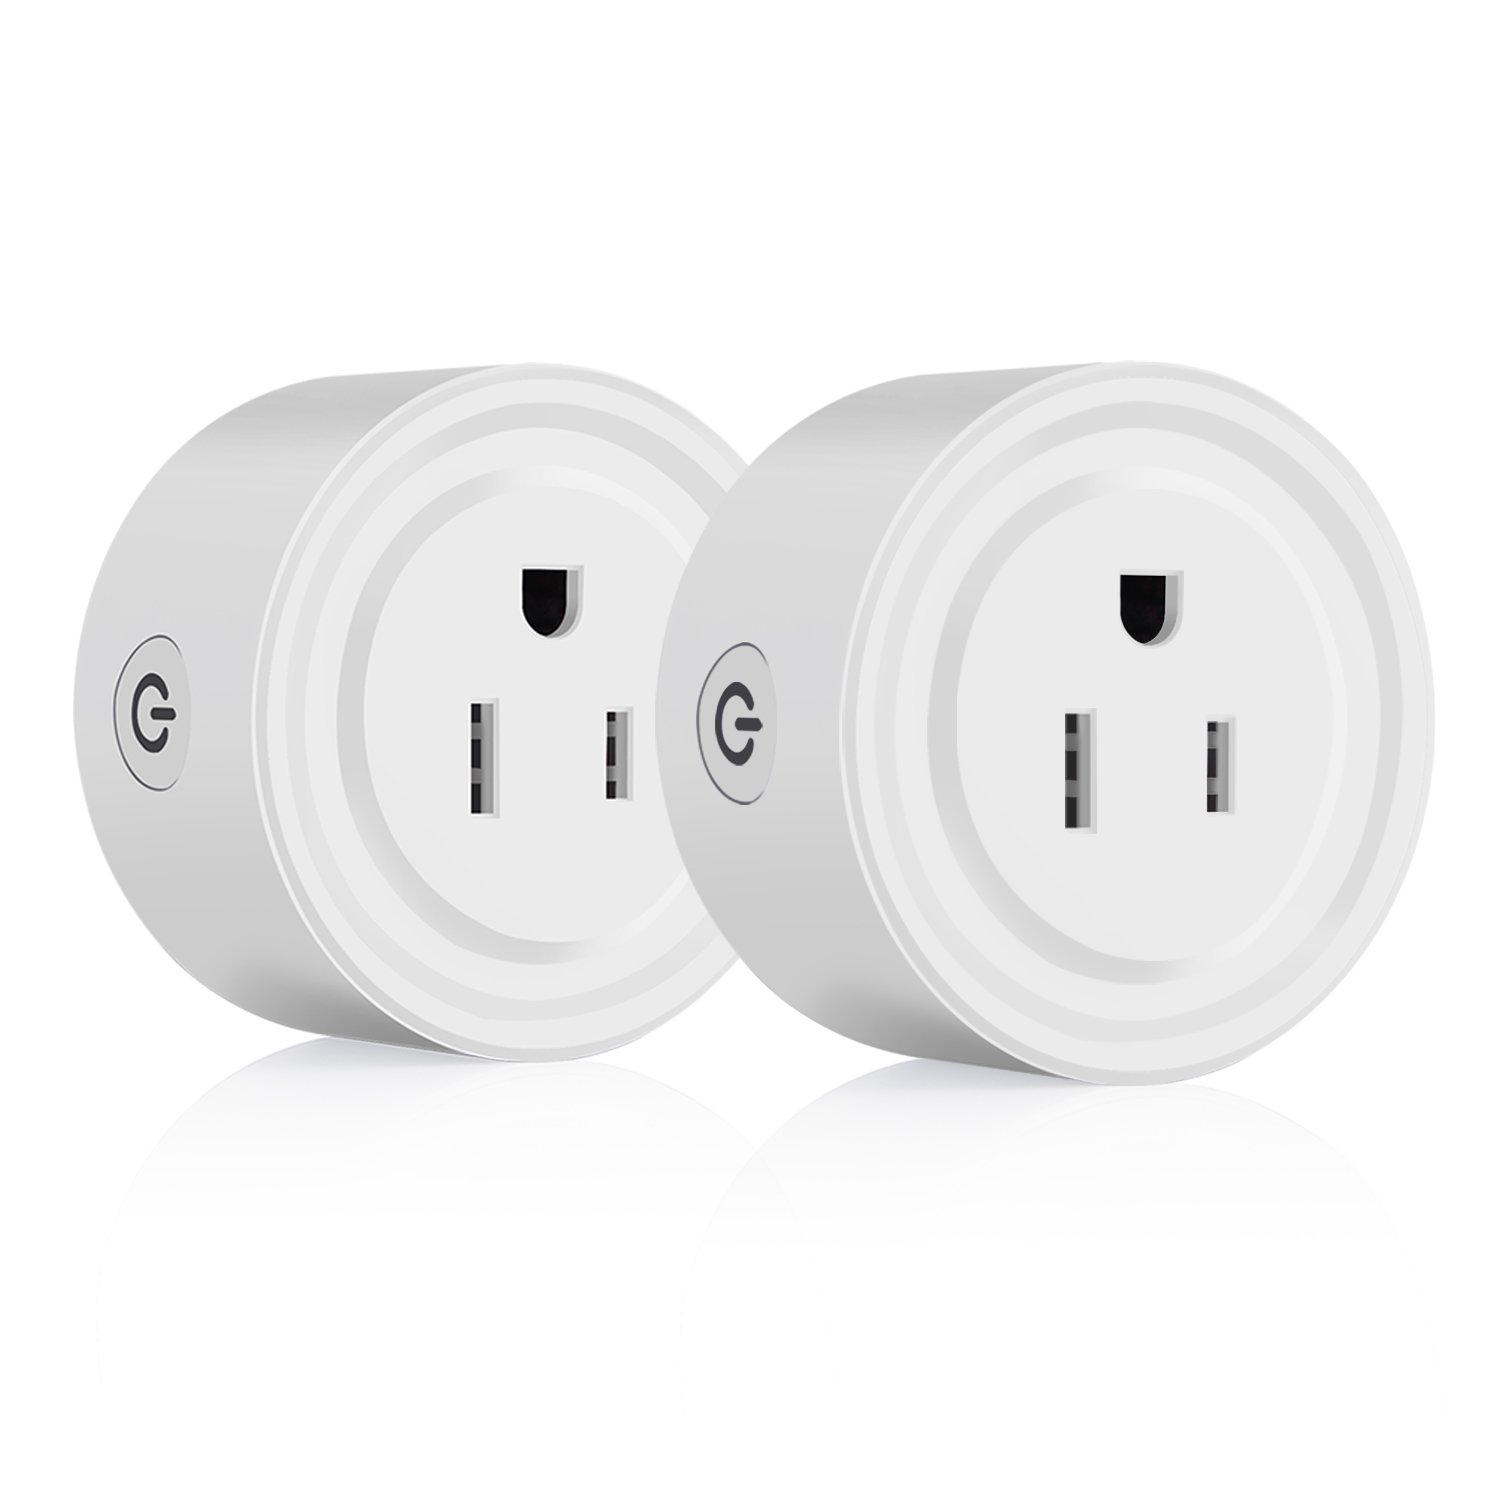 WIFI Smart Plug Bearham Mini Outlet Compatible with Amazon Alexa Google Assistant IFTTT, Timer Function Wireless Remote Control via Smartphone, No Hub Required